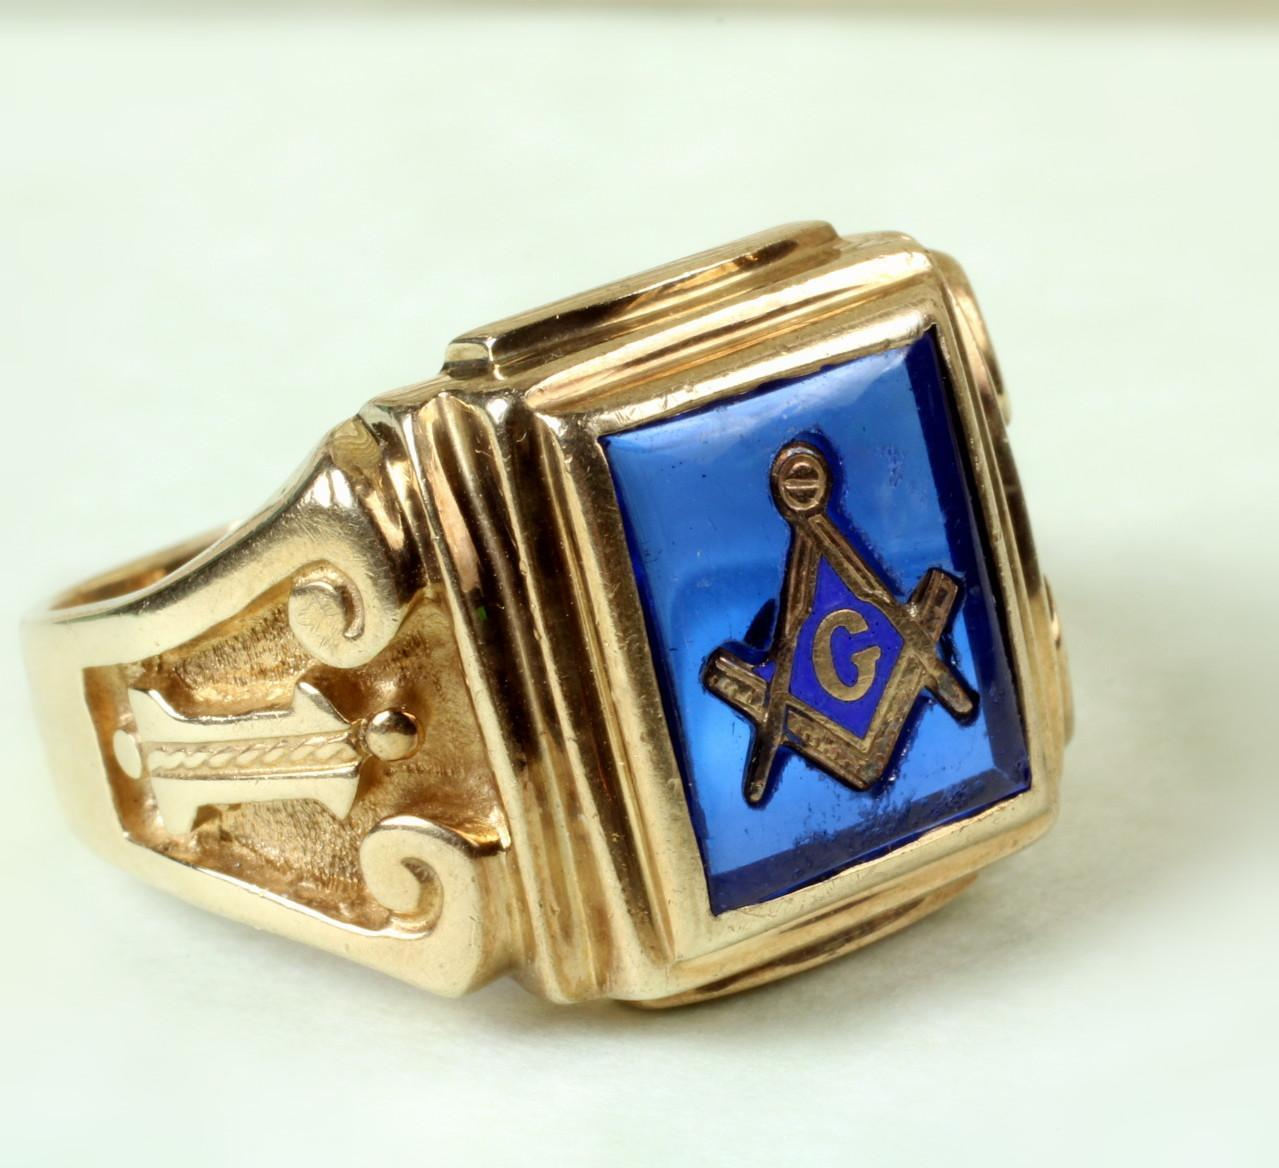 10K Yellow Gold Deco Masonic Ring with Blue Stone from